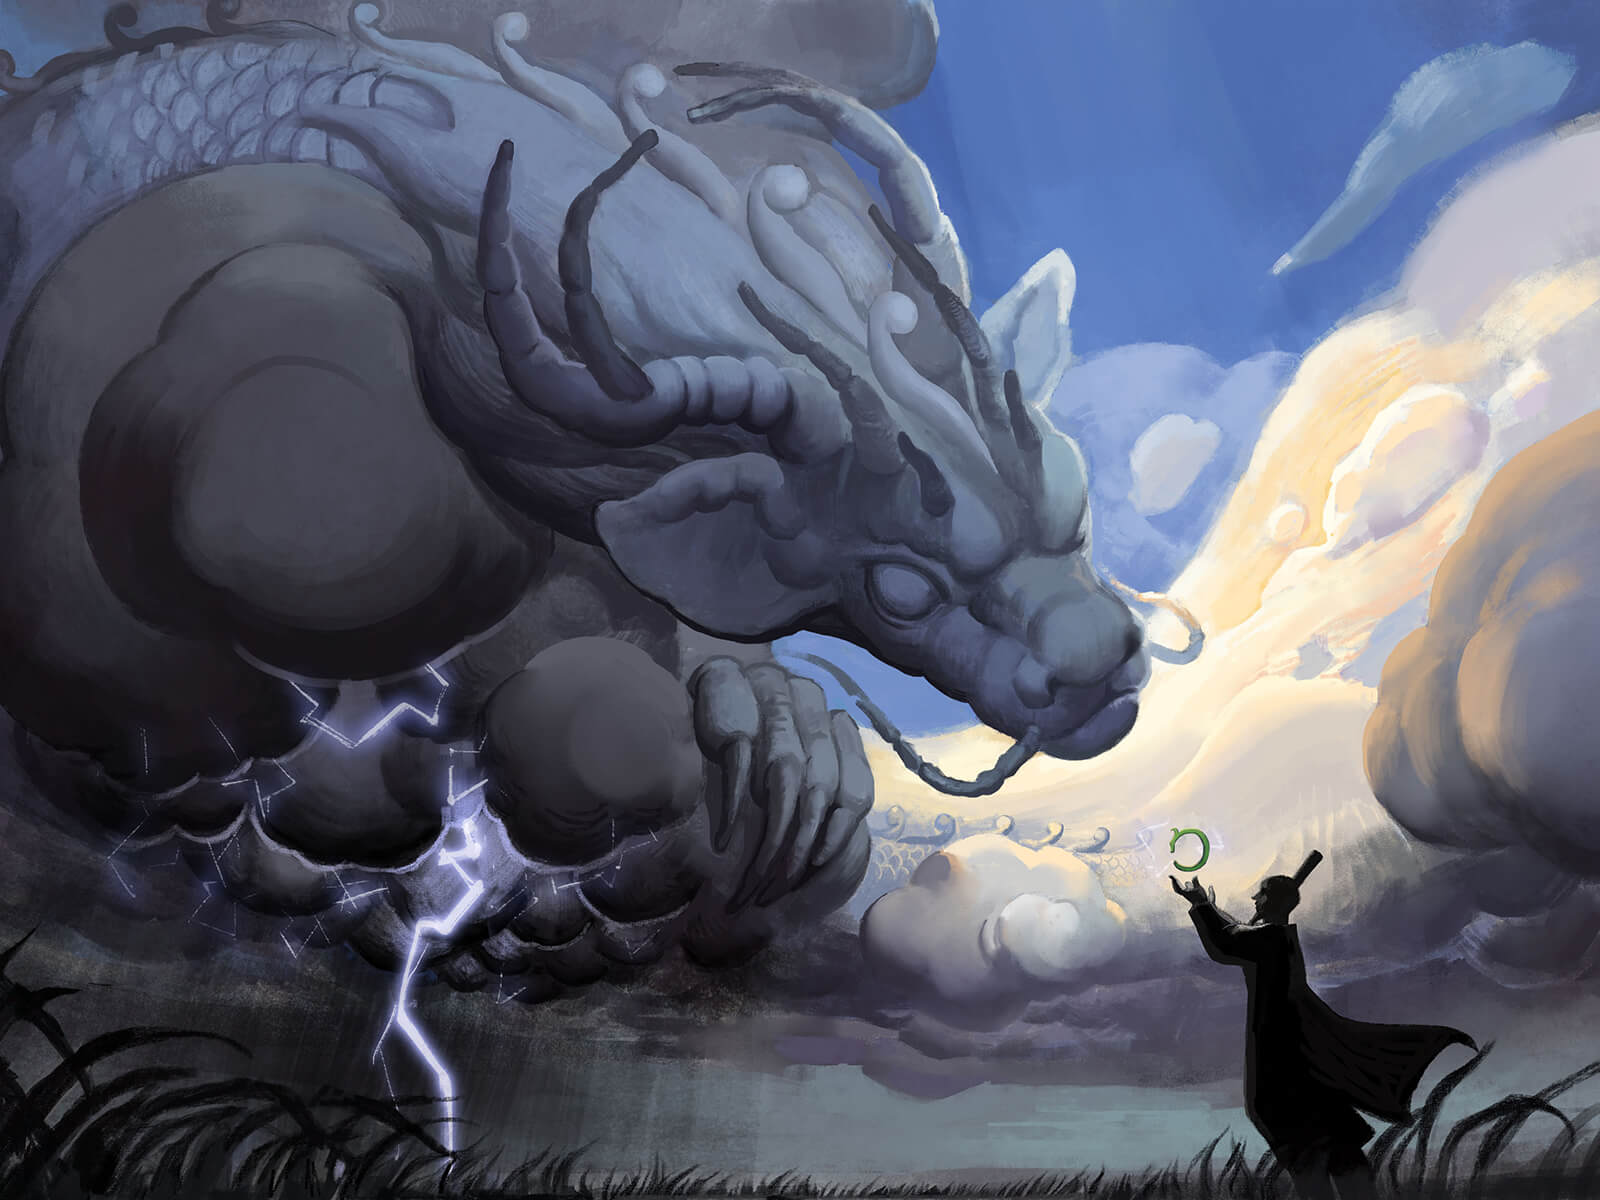 digital painting of an asian man confronting an enormous dragon made of clouds and generating lightning